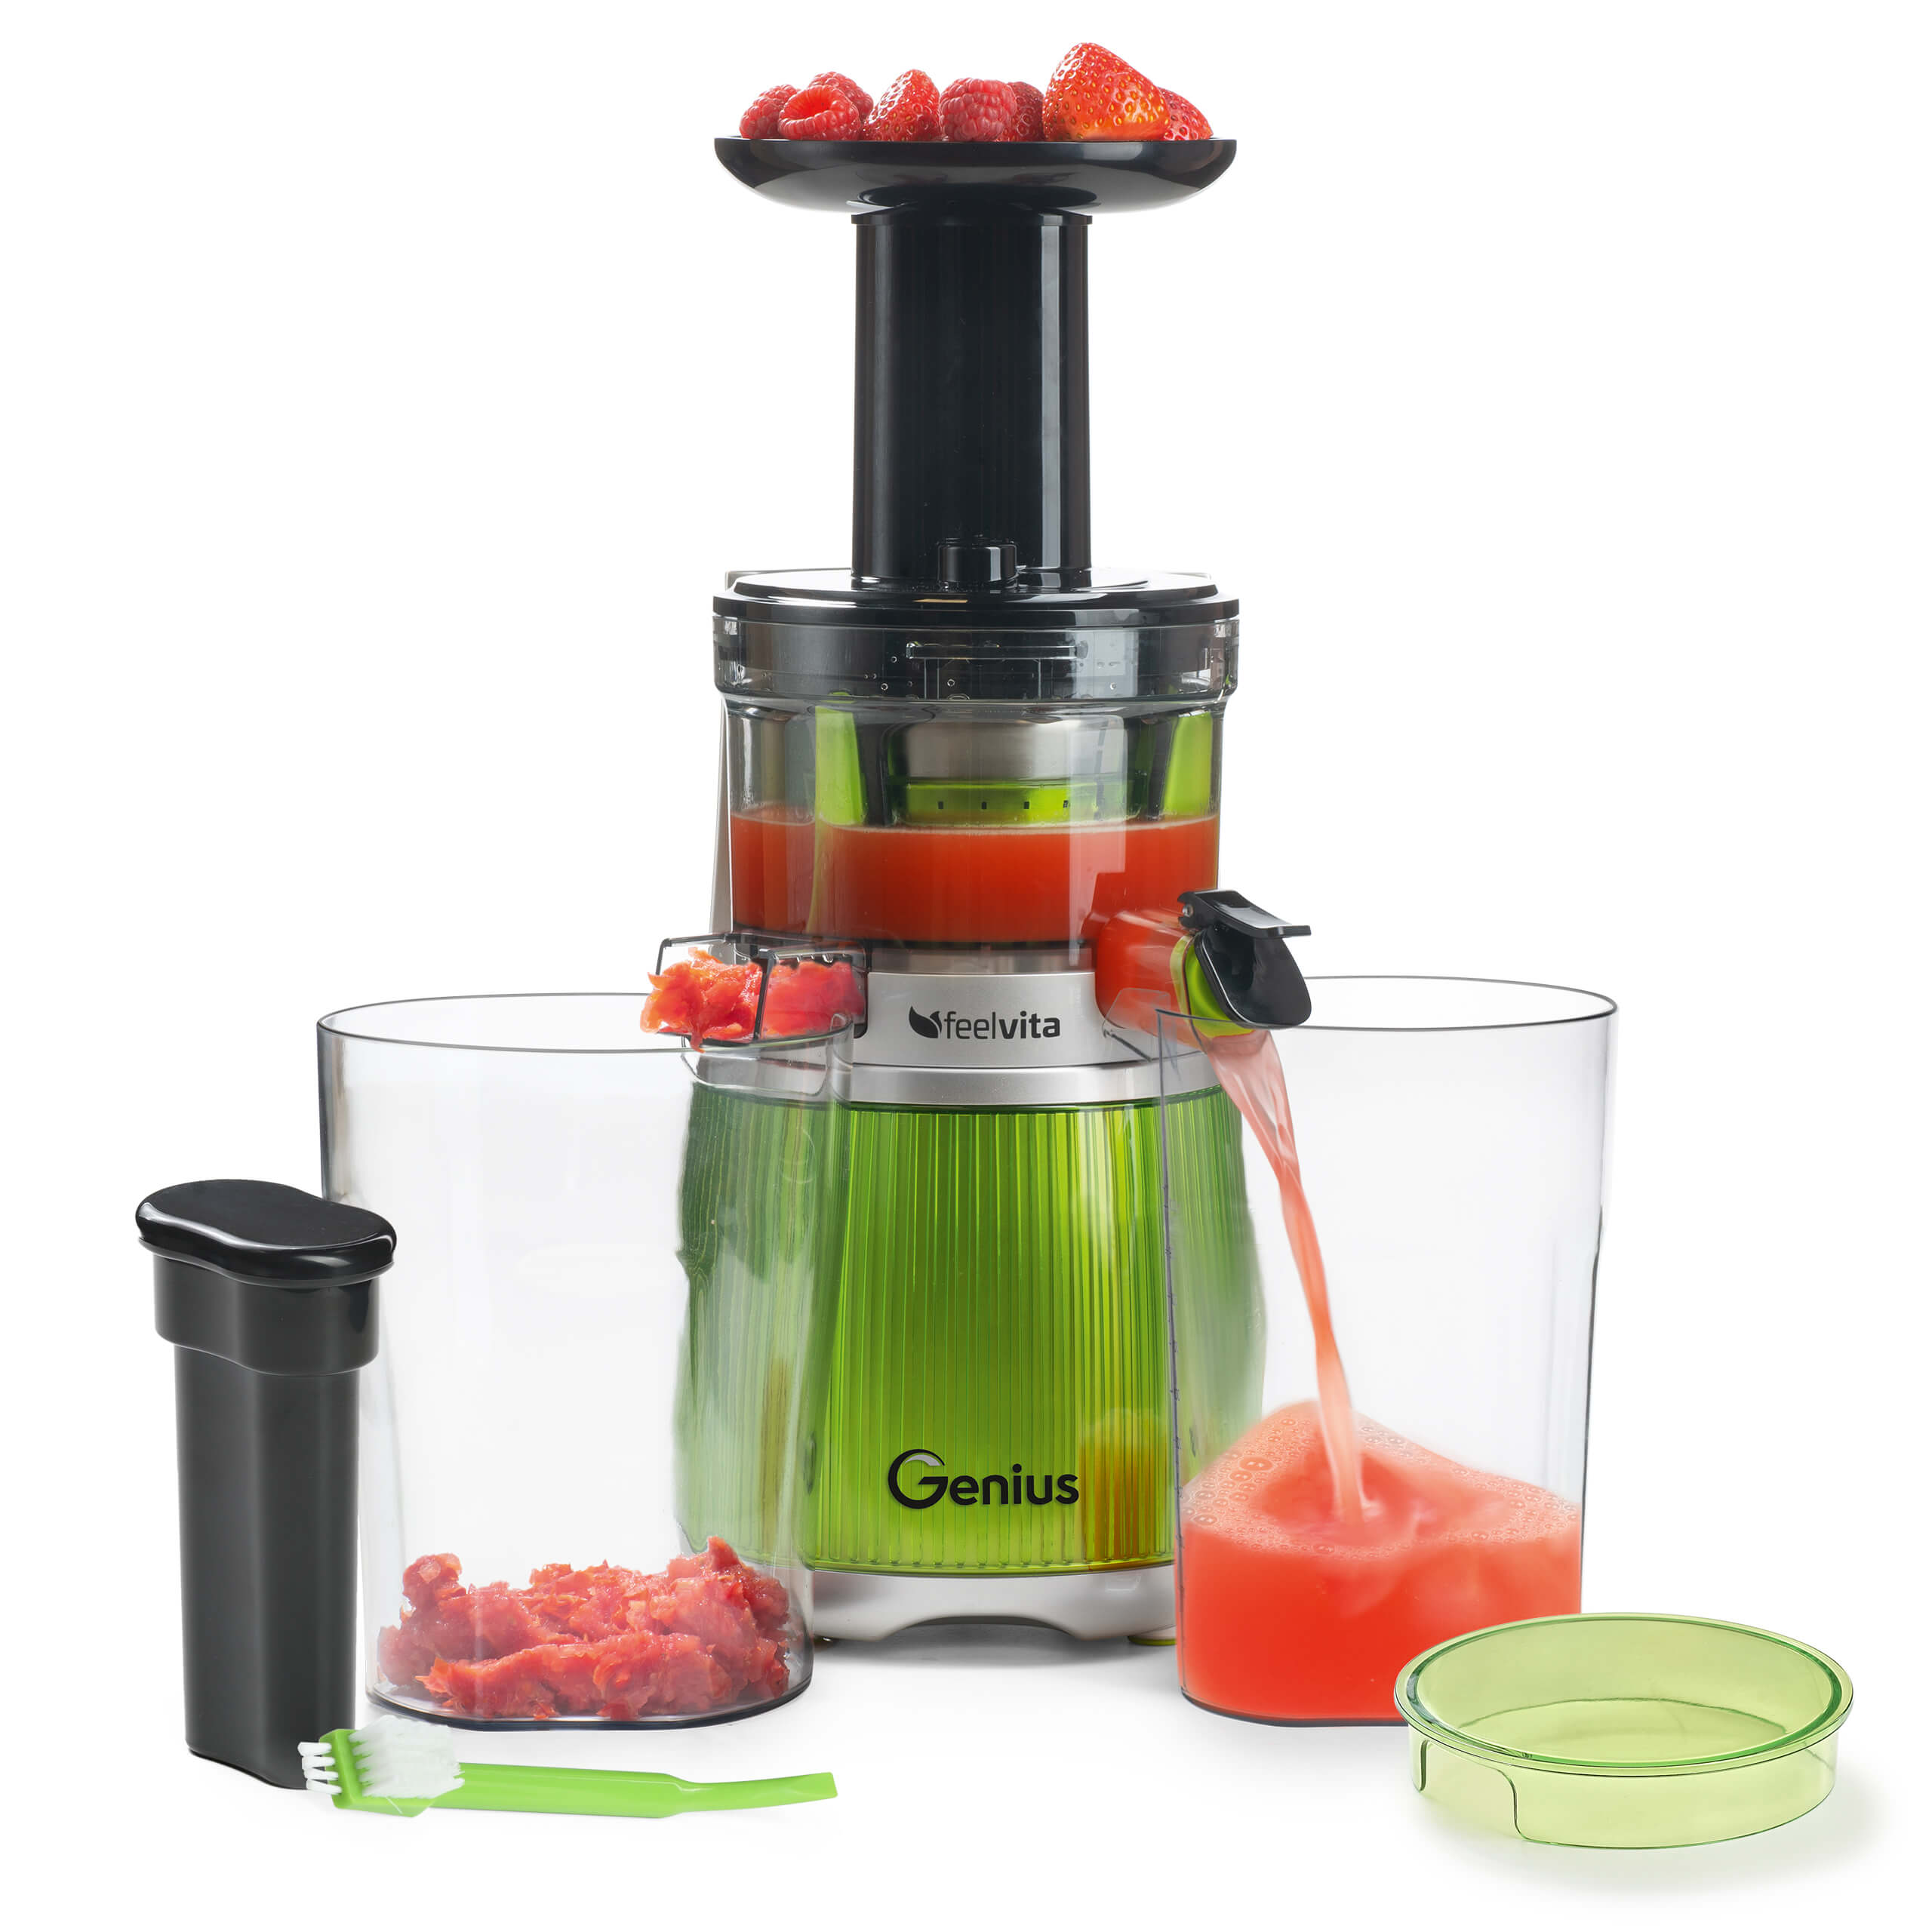 Genius Feelvita | Slow Juicer | Set 12-tlg. A31556